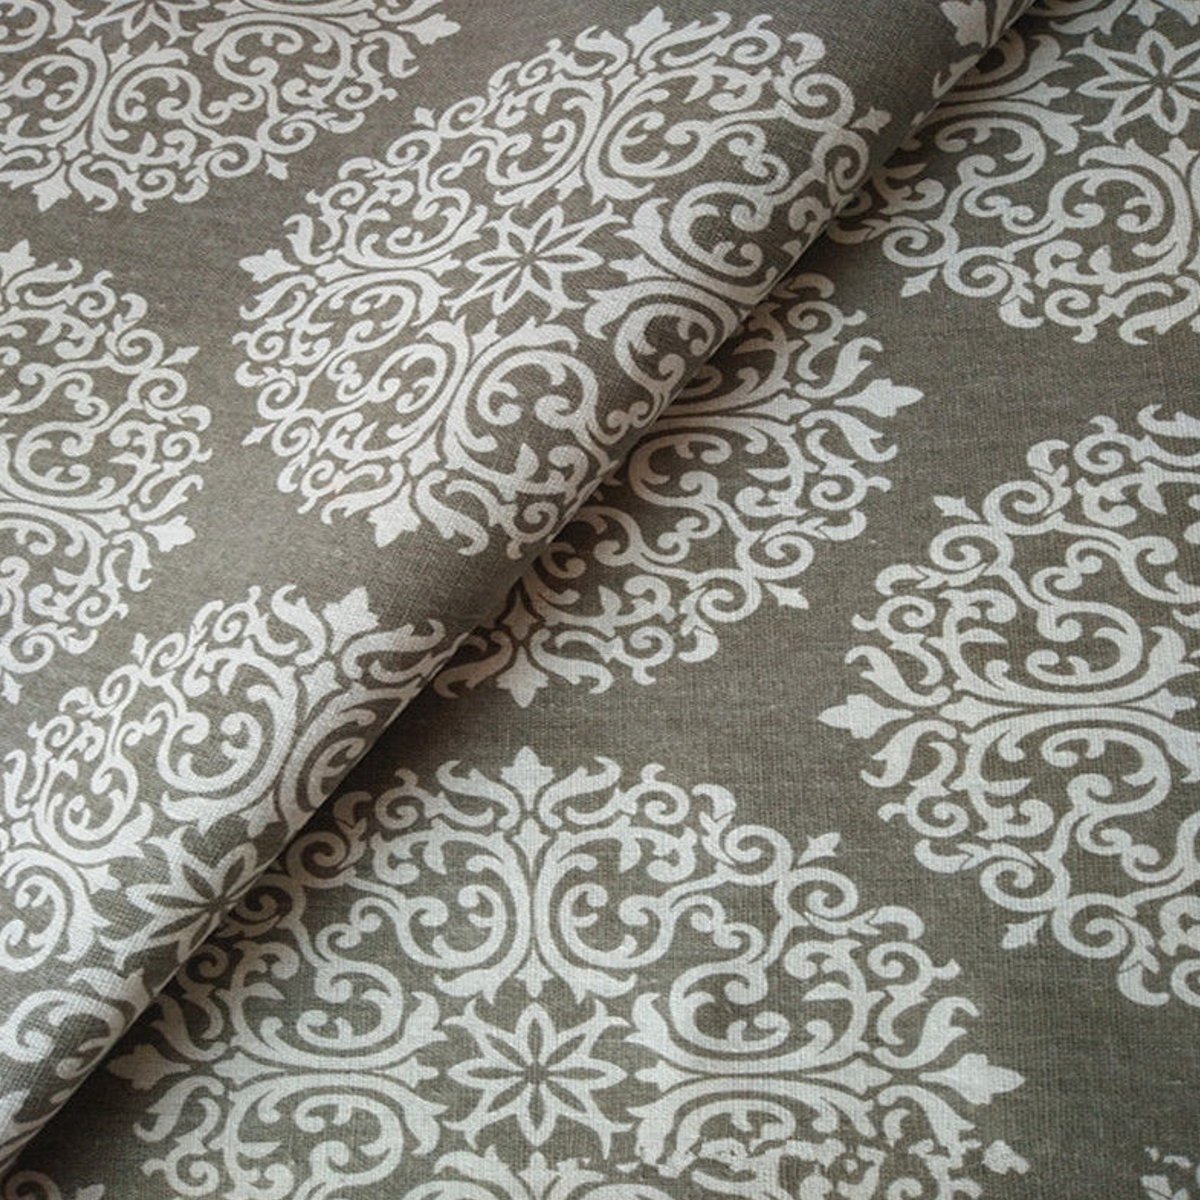 50x150cm cotton linen upholstery fabric printed craft patchwork cloth